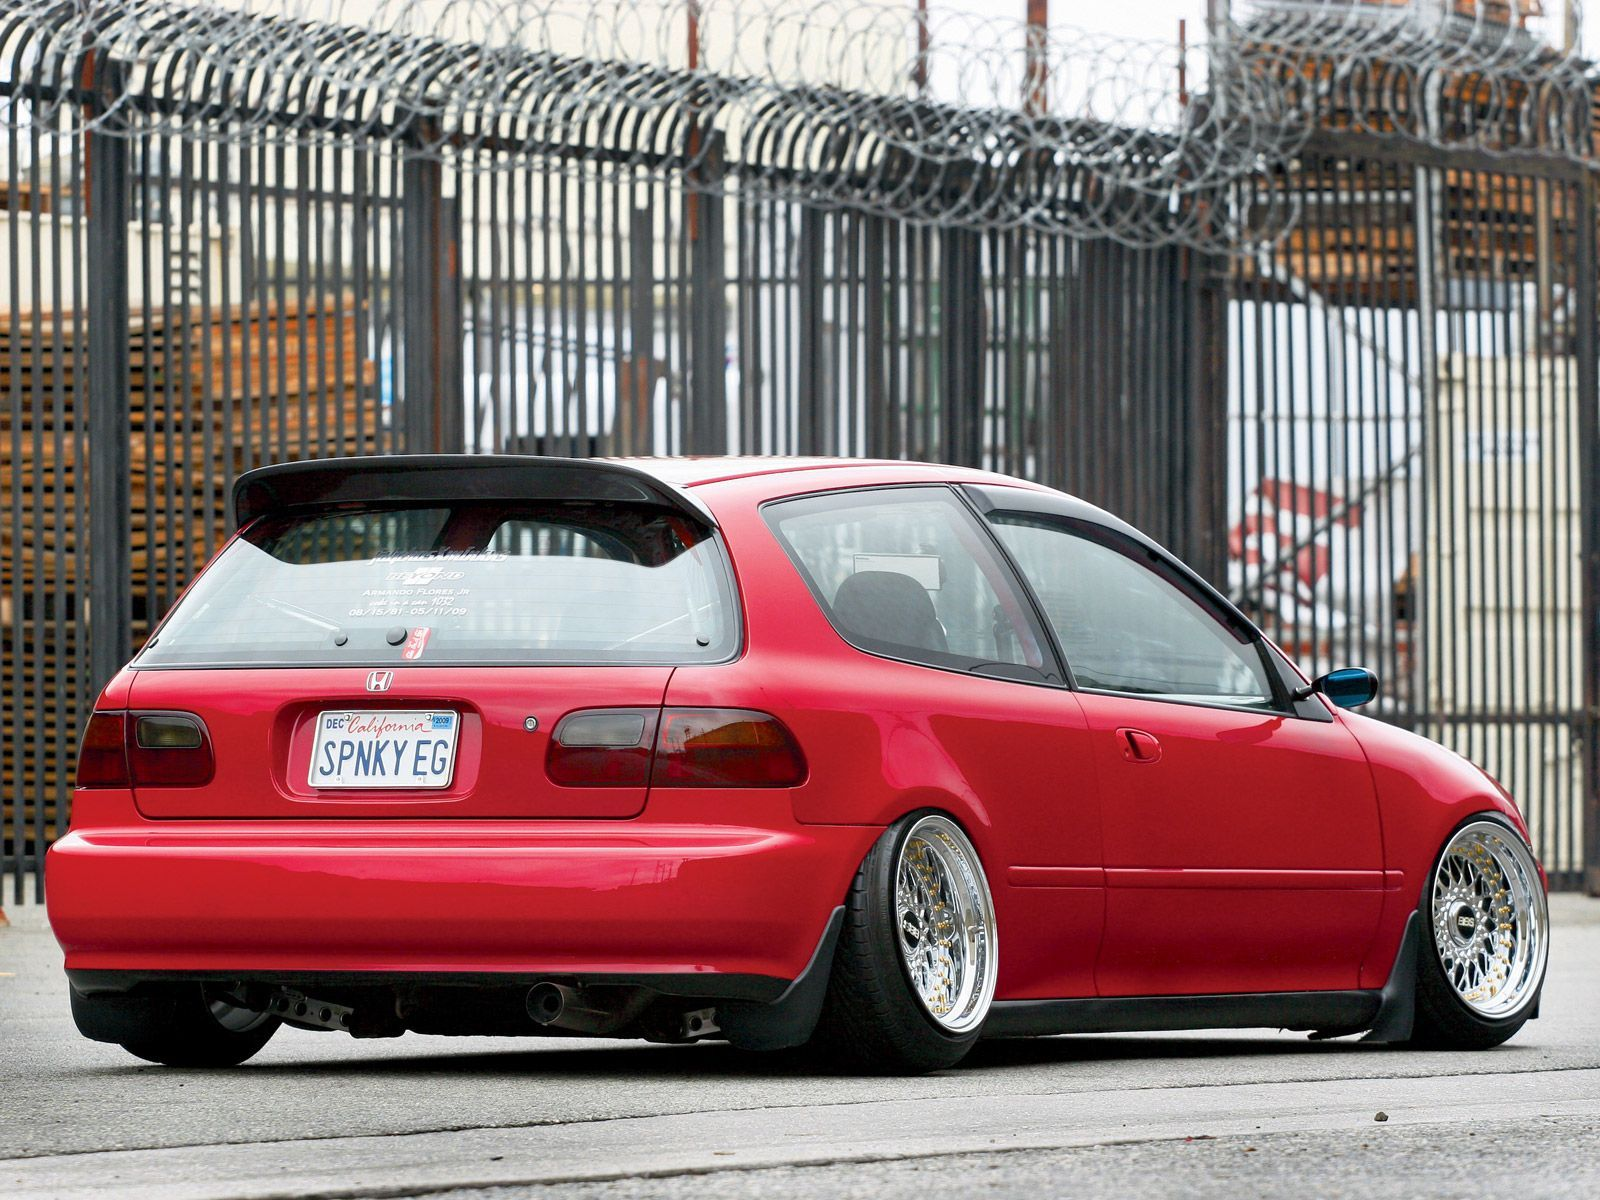 civic 95 vx jdm Pesquisa Google Charlie Red Project 1